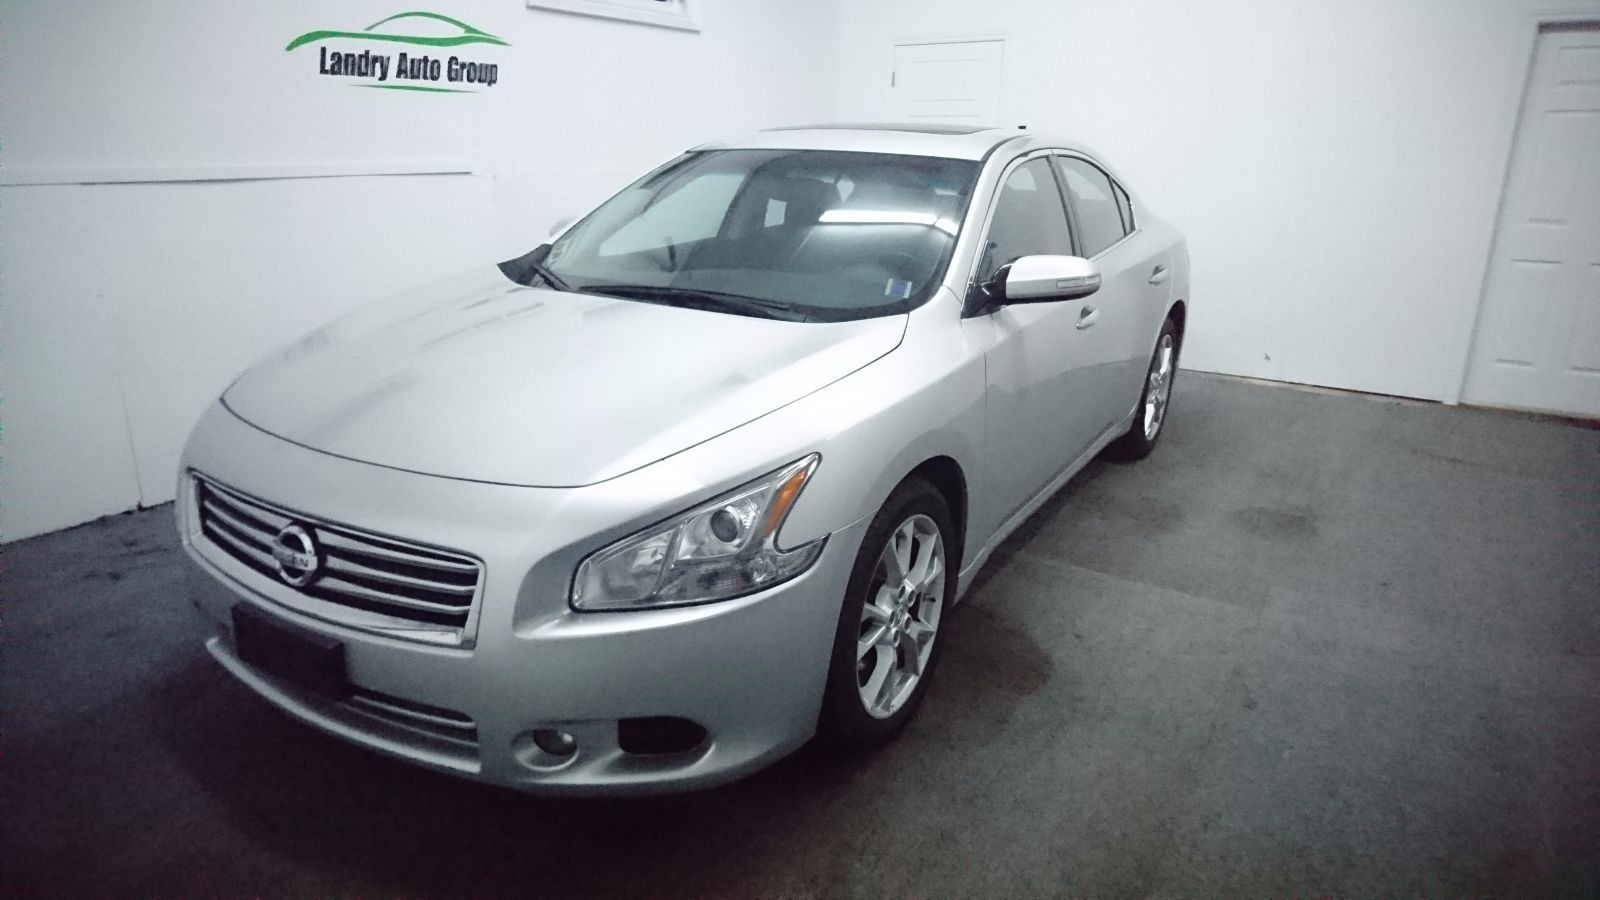 902 auto sales used 2014 nissan maxima for sale in dartmouth kn 408. Black Bedroom Furniture Sets. Home Design Ideas